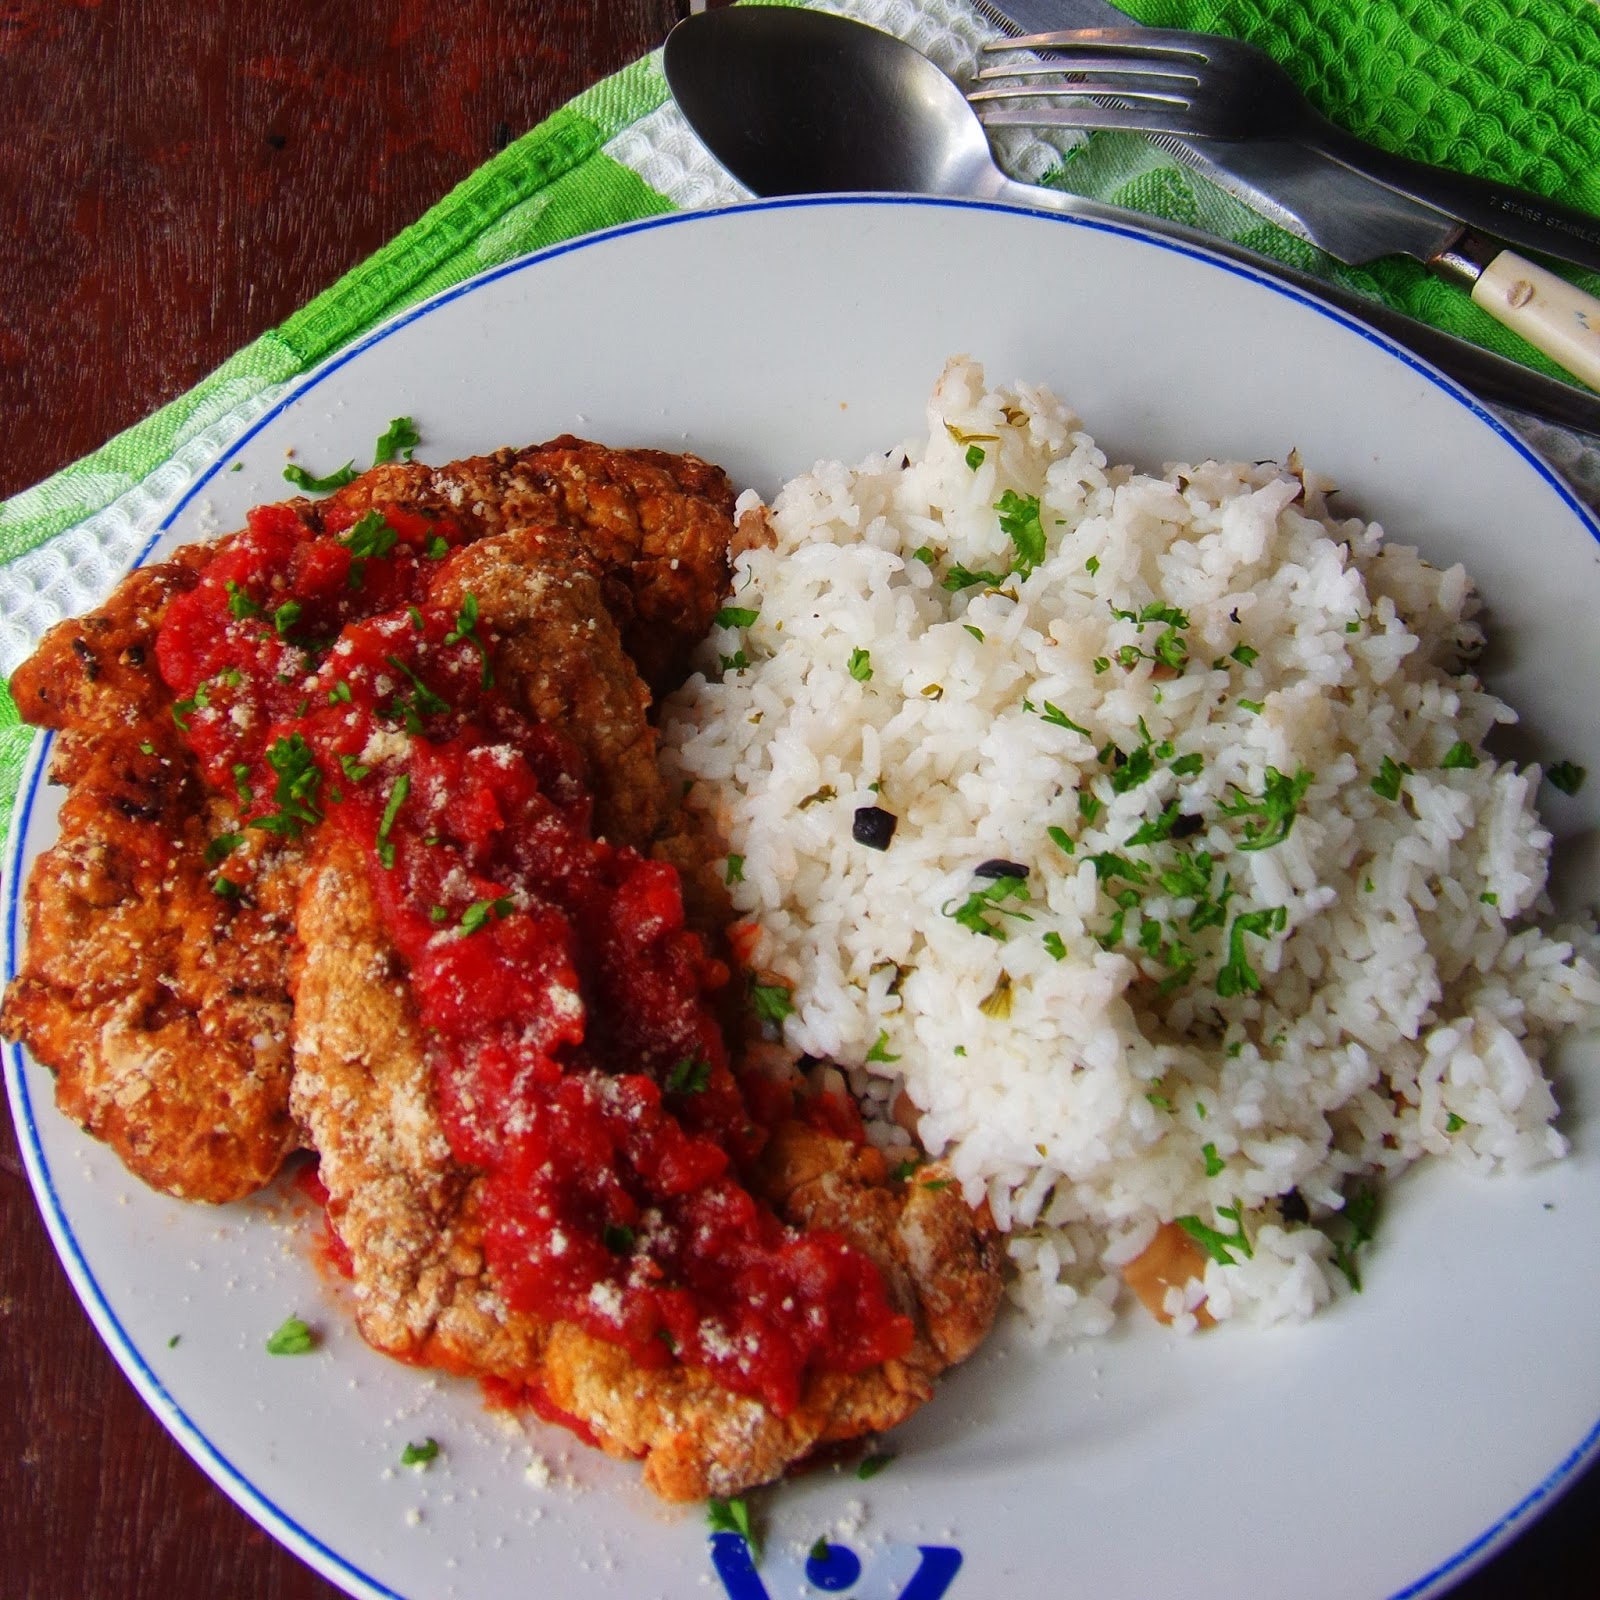 Italian style fried chicken breast and steamed rice simple fried chicken recipe how do you make fried chicken how do you fry ccuart Choice Image